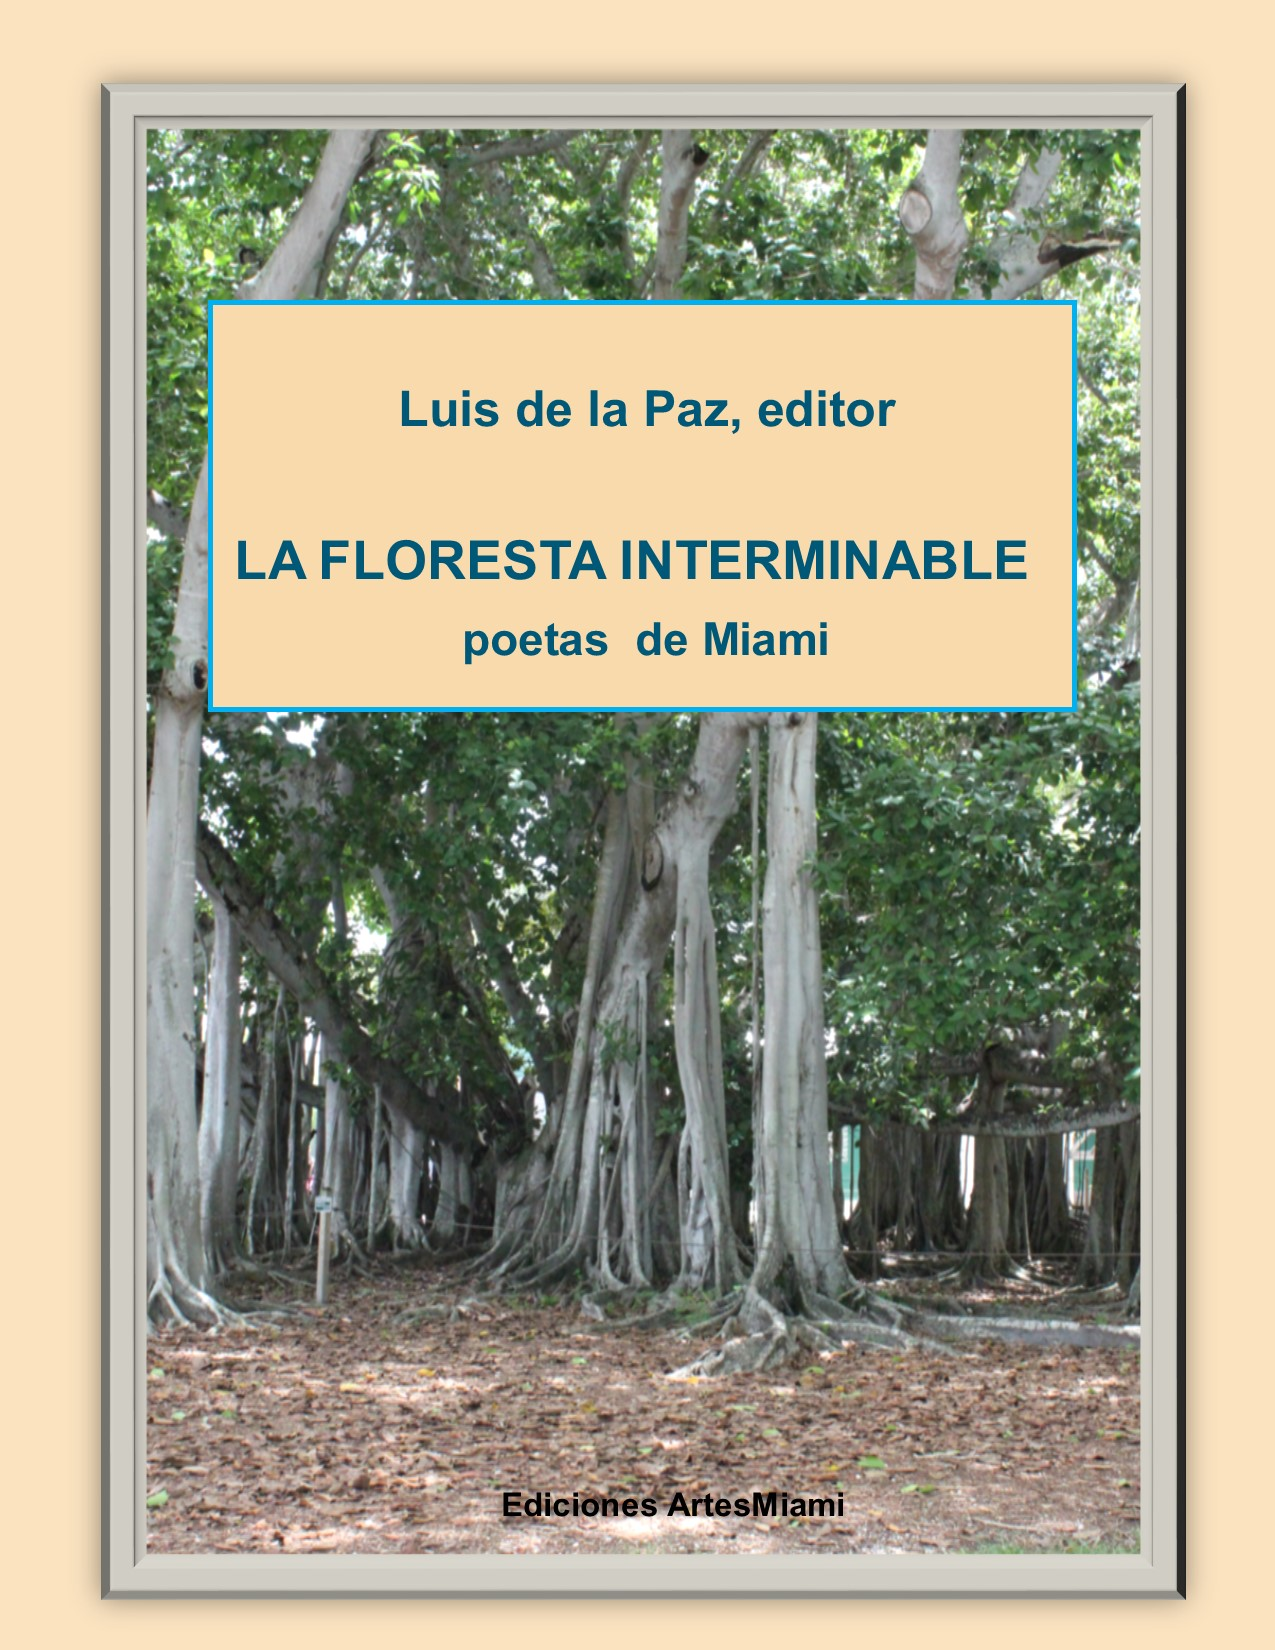 La Floresta Interminable